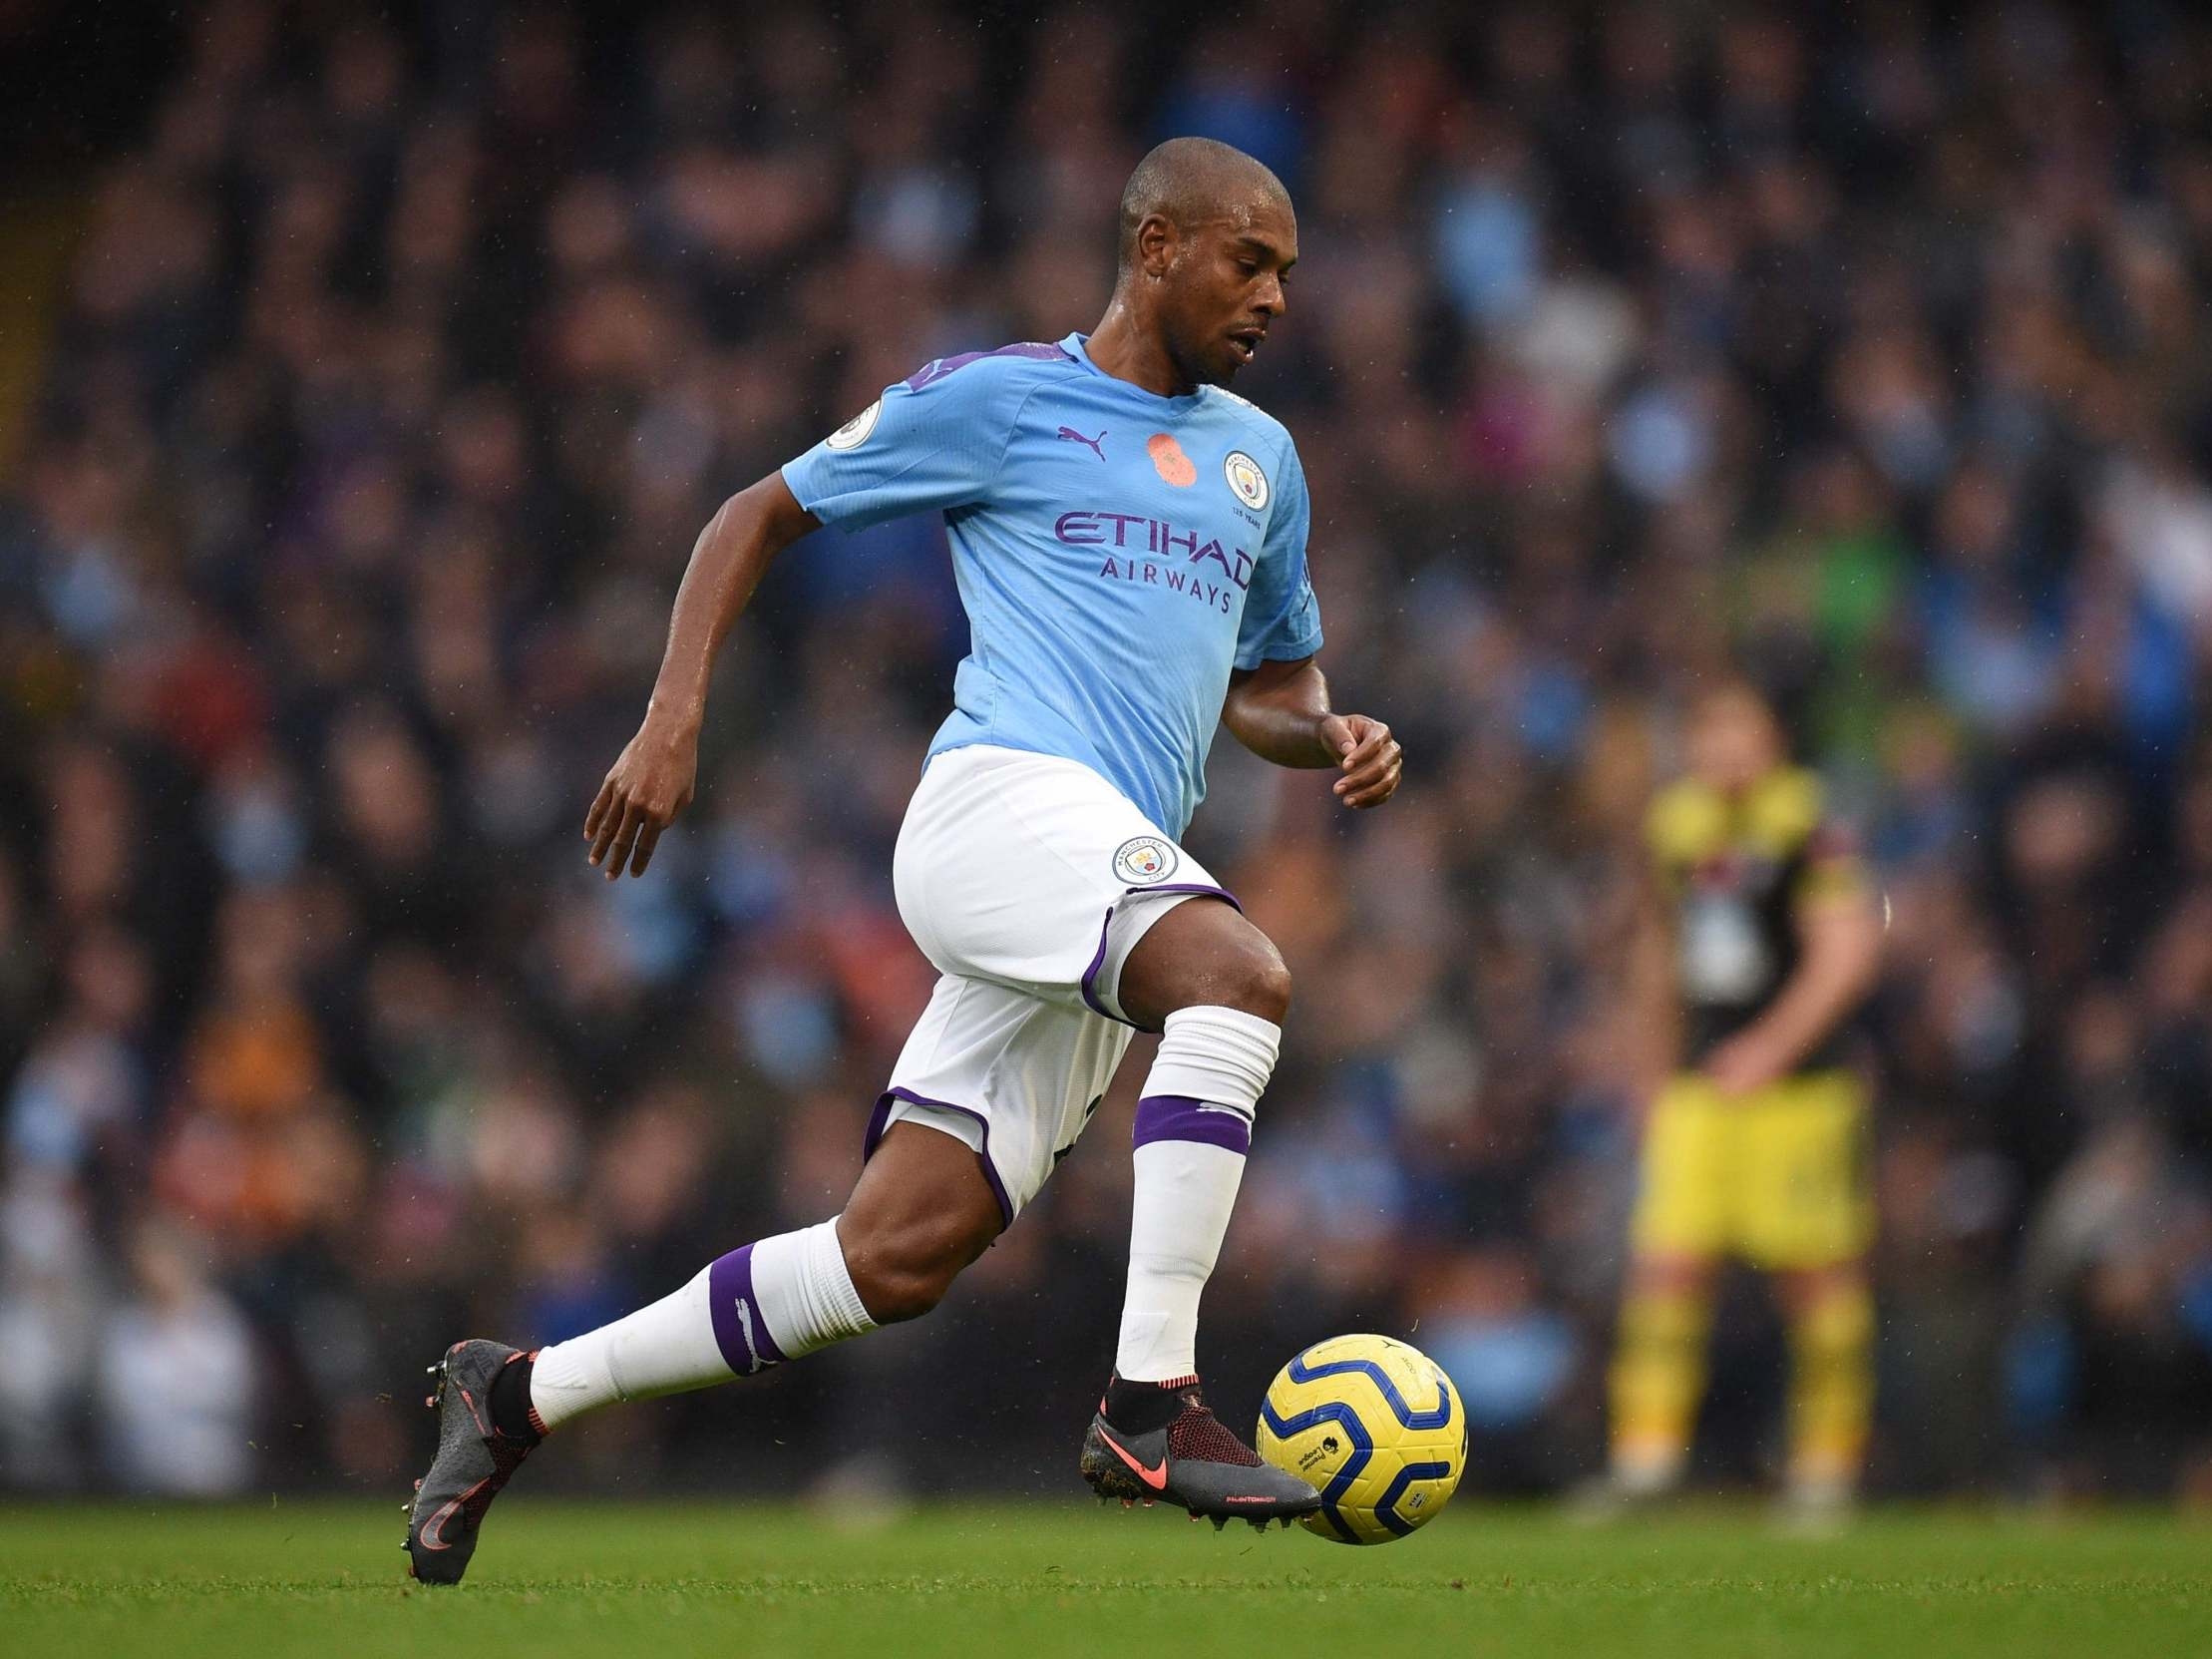 Man City's dismal record at Liverpool means nothing – Fernandinho